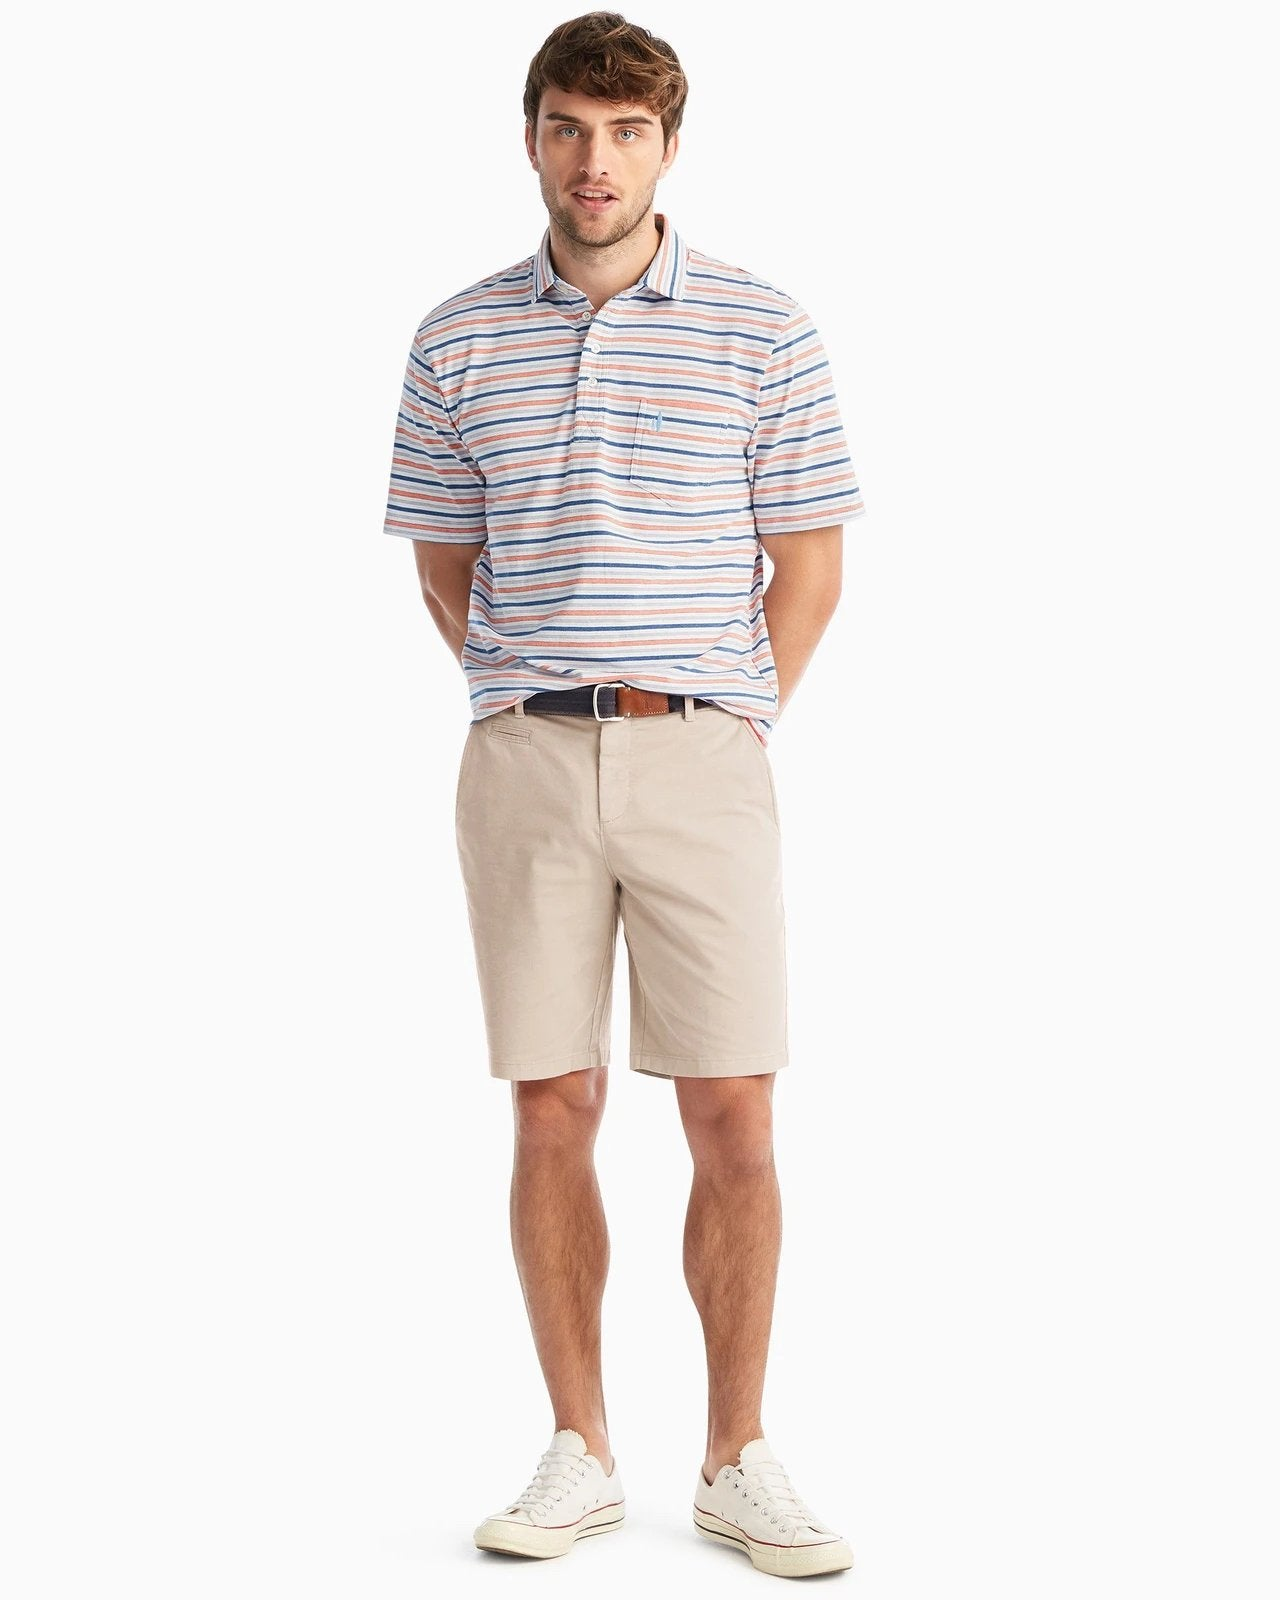 JOHNNIE O Men's Shorts STONE / 32 Johnnie-O Neal Stretch Twill Shorts || David's Clothing JMSH1400S